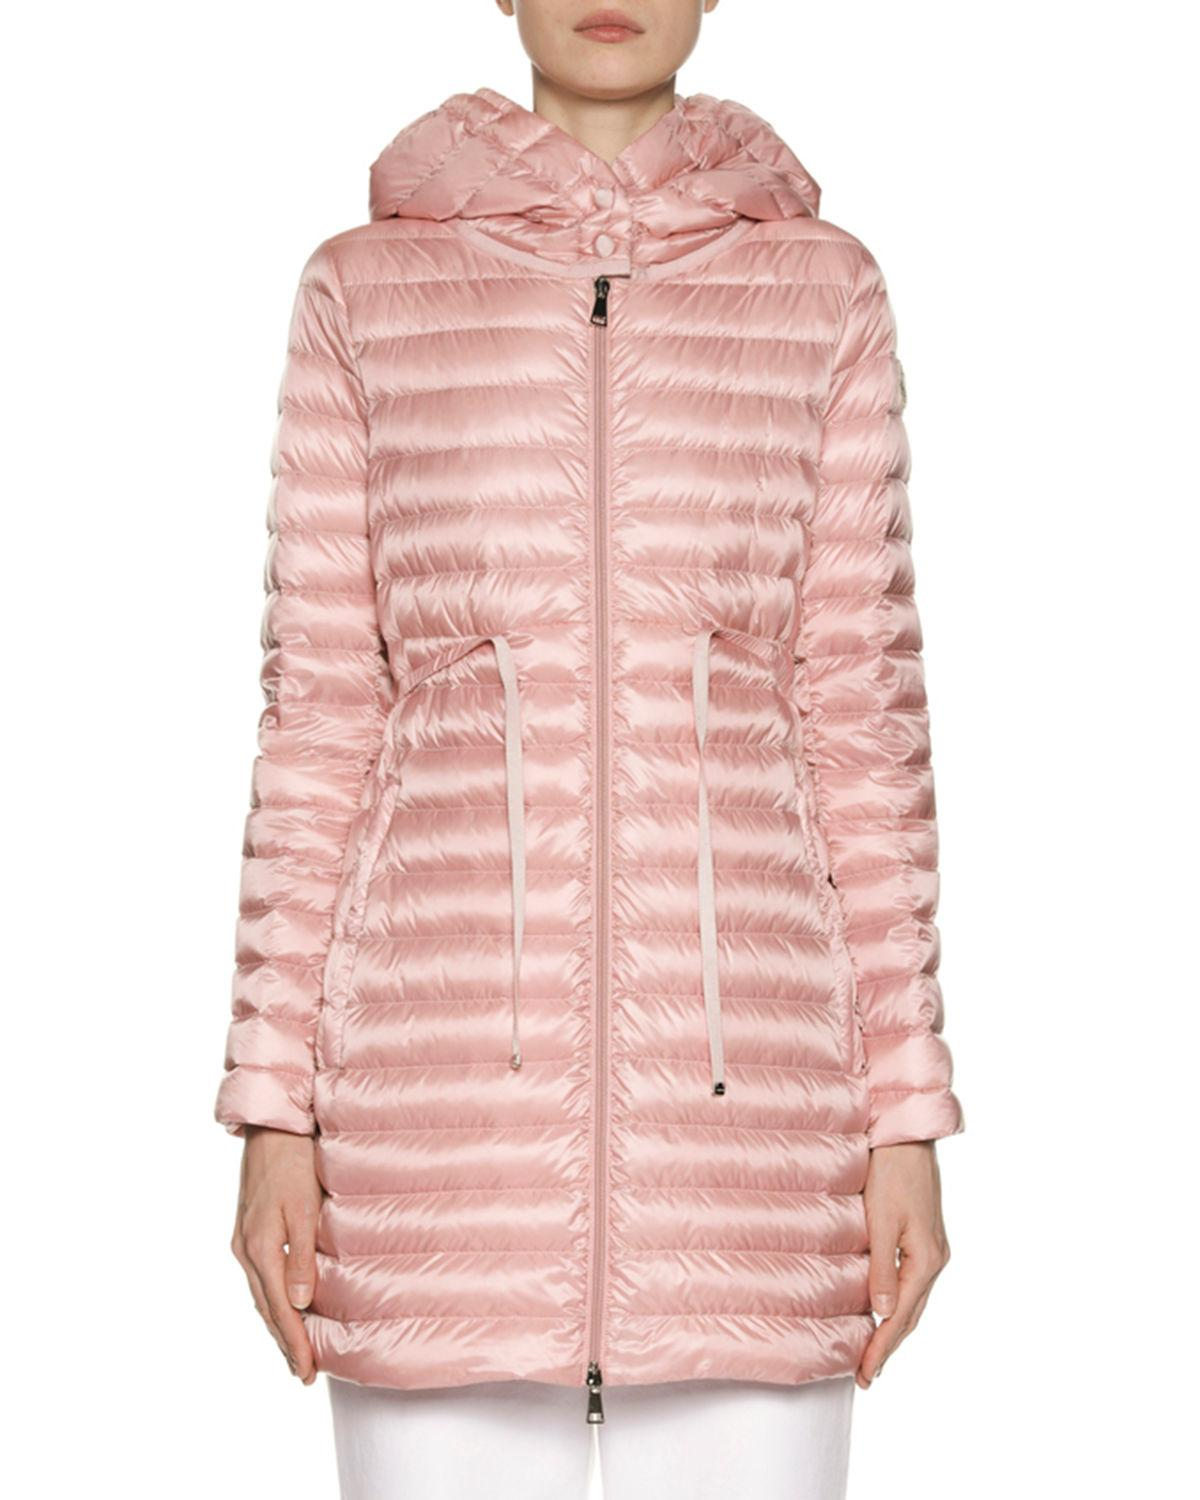 68dd60993b0f Lyst - Moncler Barbel Hooded Puffer Coat in Pink - Save 18%